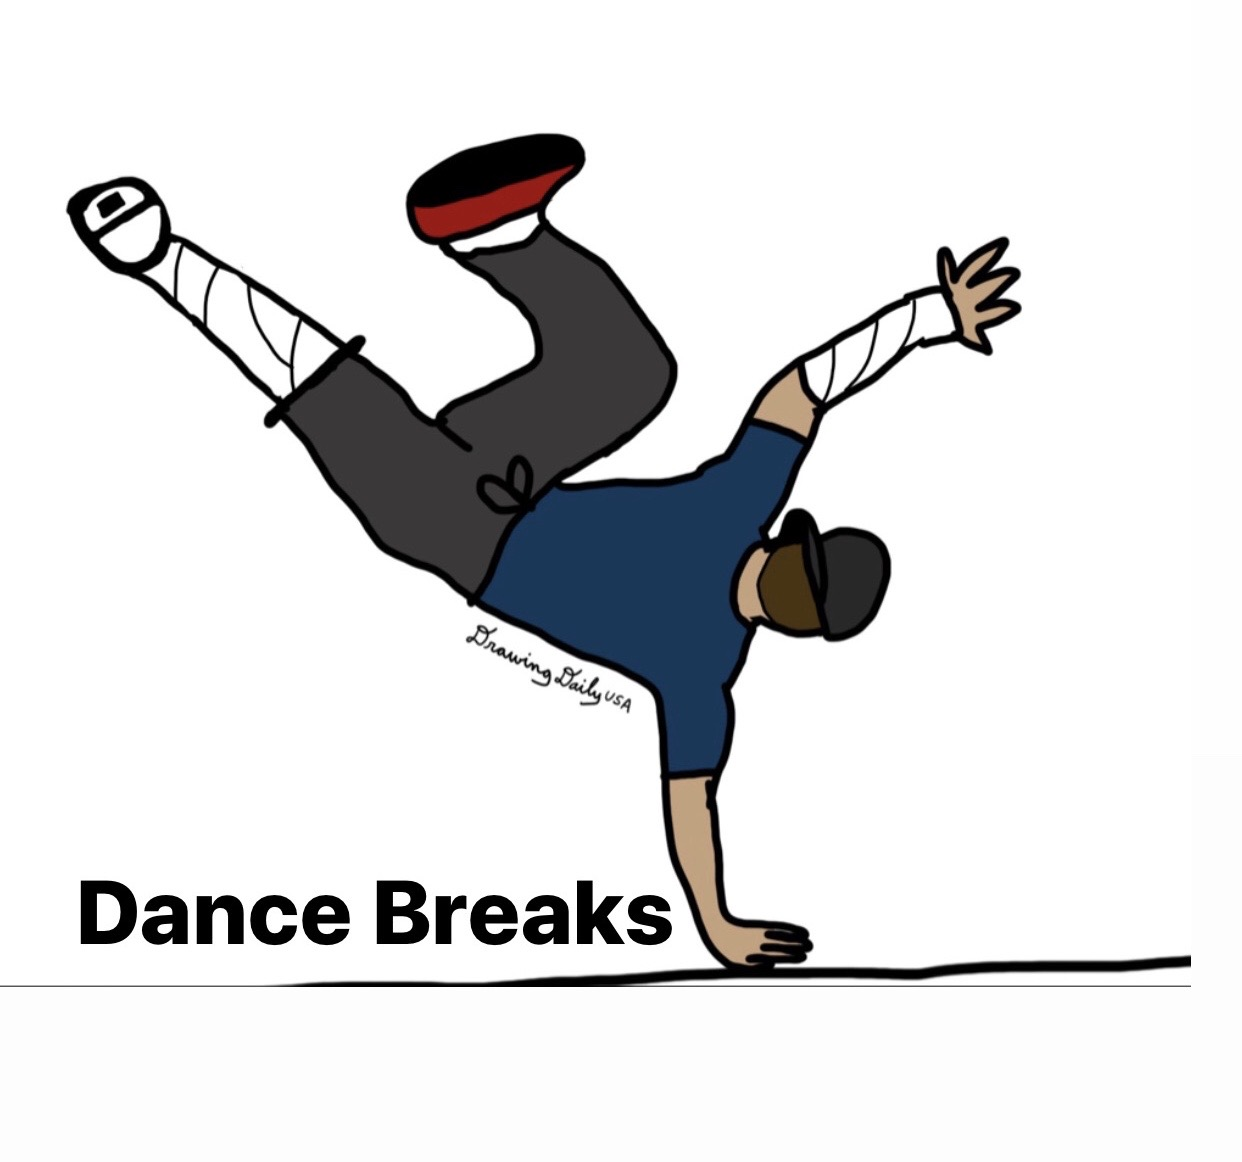 Dance Breaks